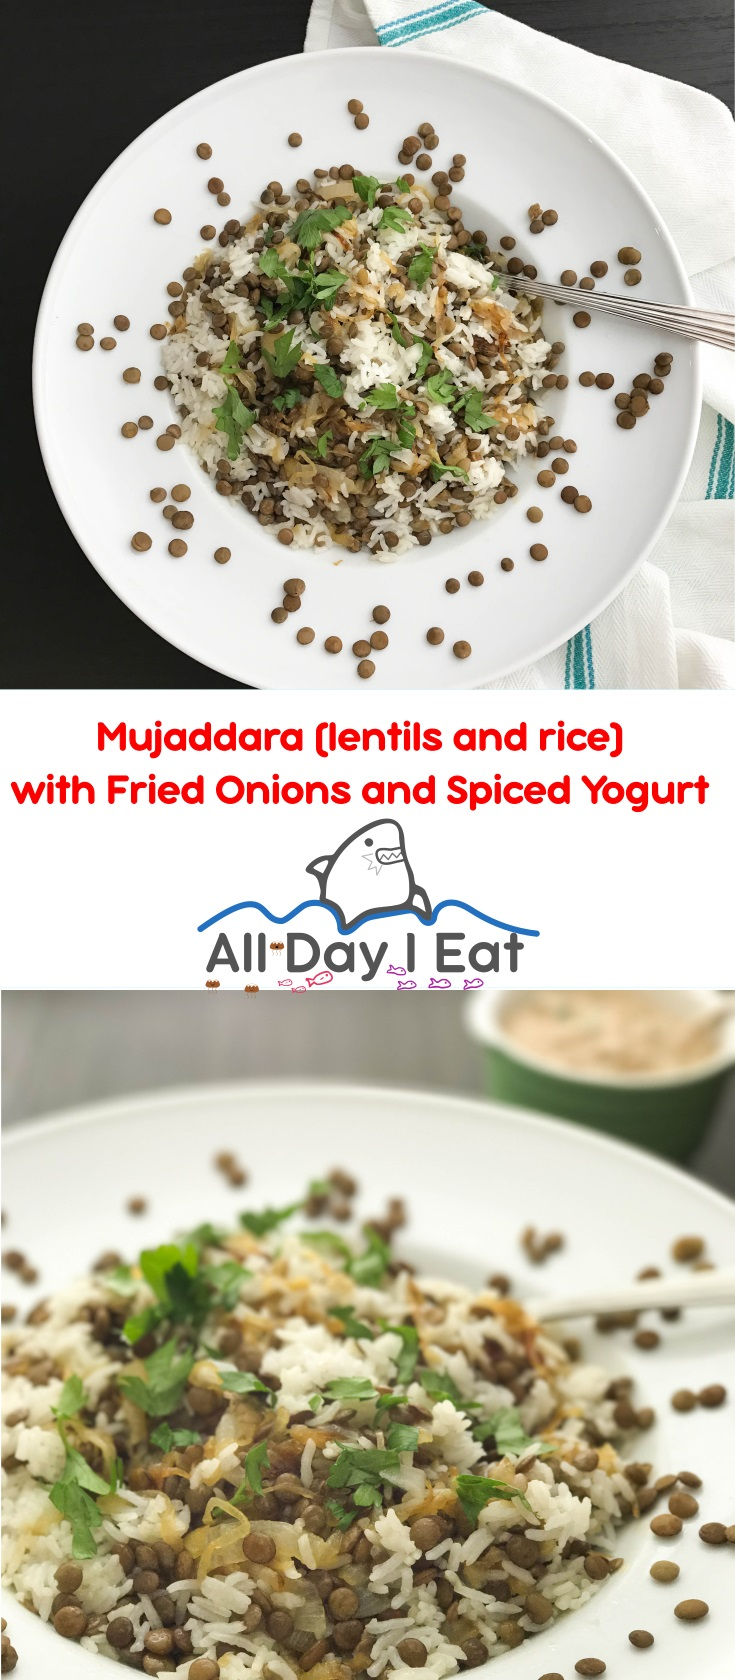 Mujaddara (lentils and rice) with Fried Onions and Spiced Yogurt | www.alldayieat.com